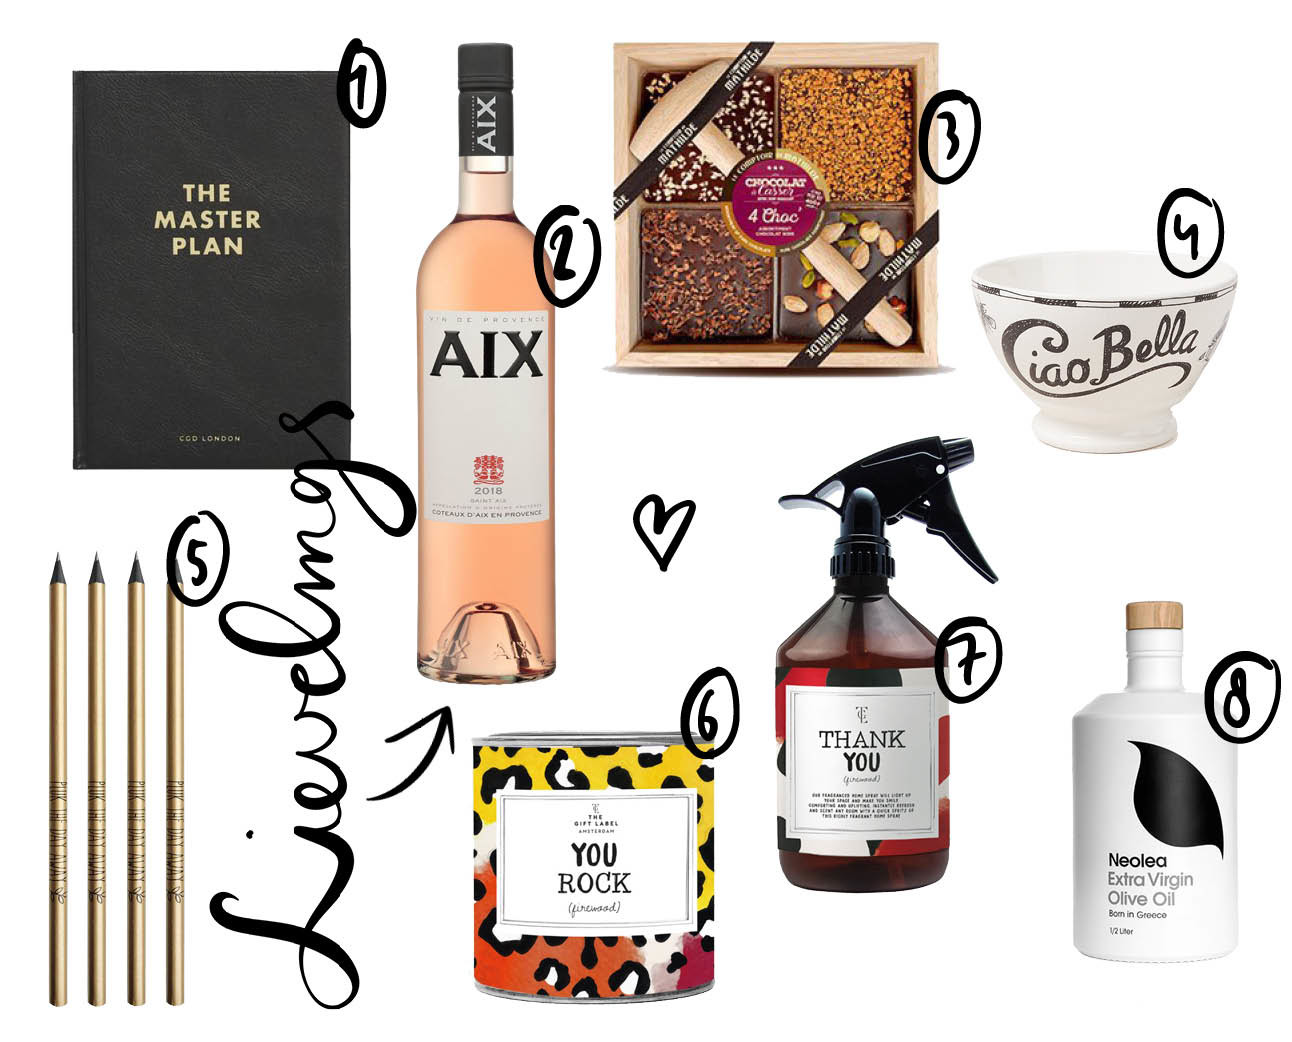 shopping cadeautjes voor meesters en joffen, spray, kaars, aix rose, the master plan